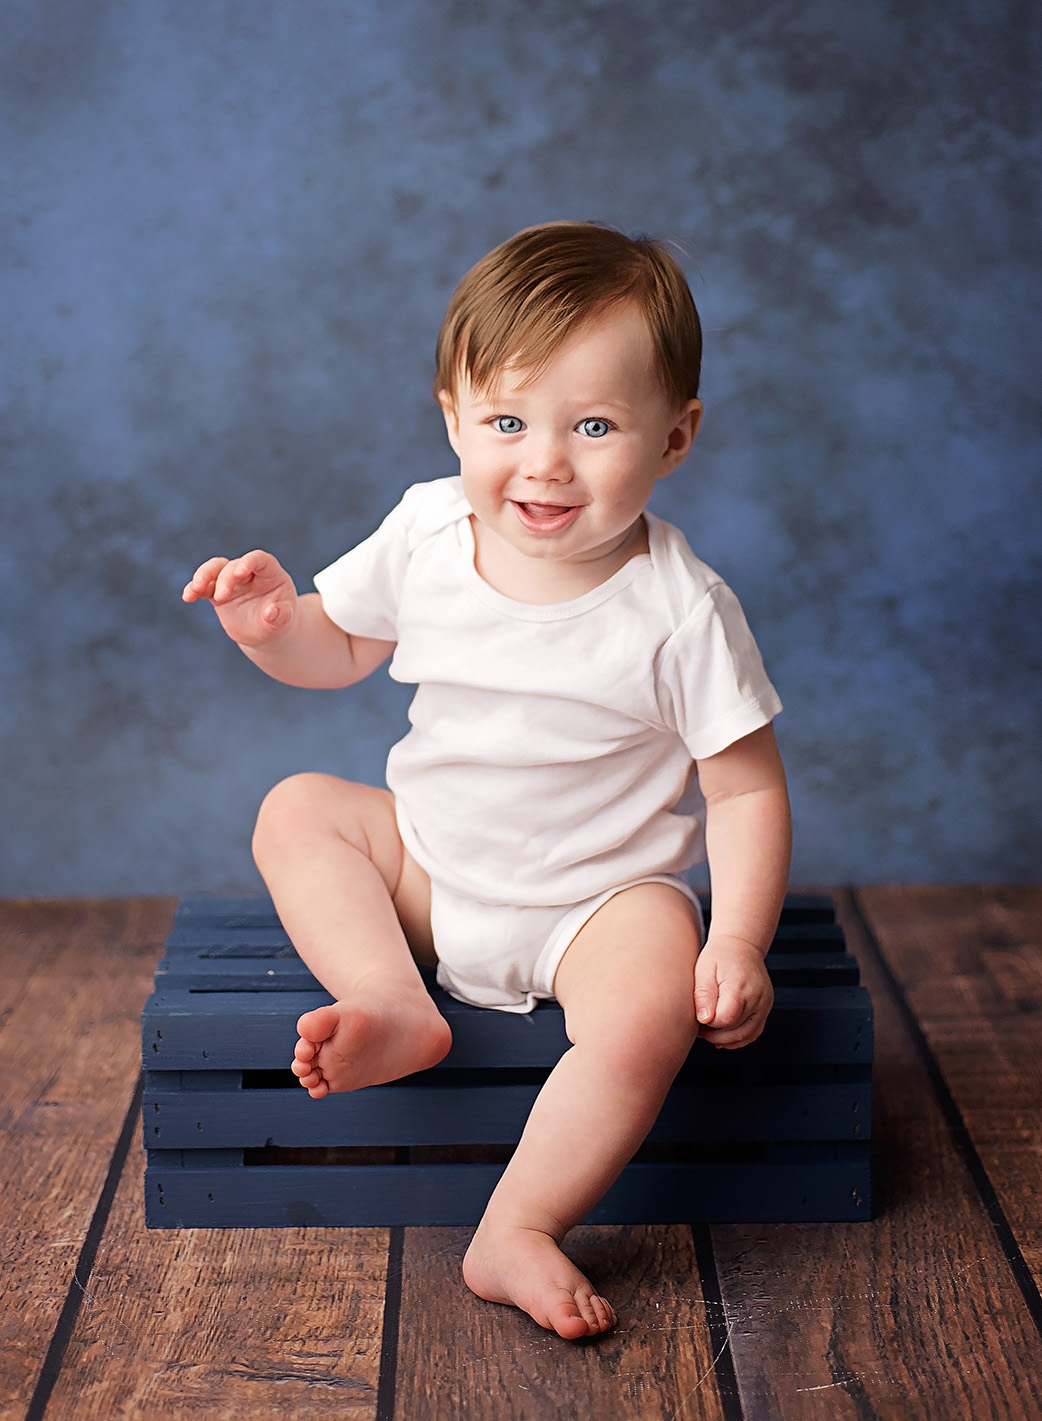 6 month old boy sitting on blue wooden crate